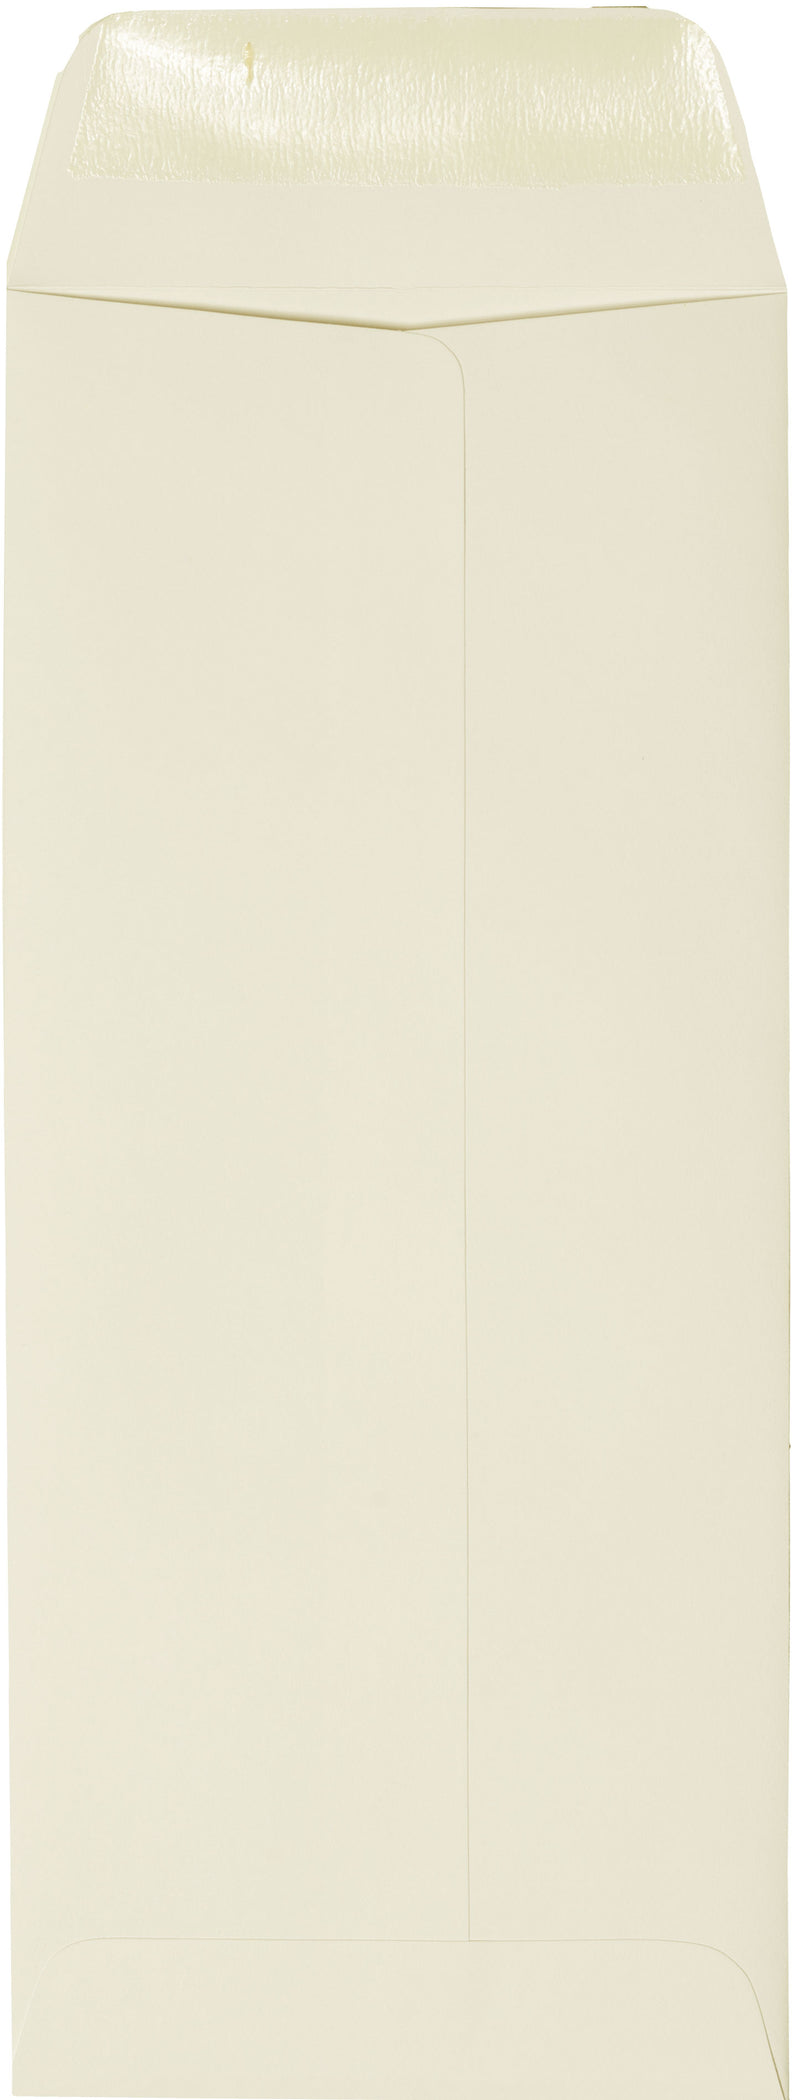 products/no10_policy_classic_natural_cream_solid_envelopes_open.jpg